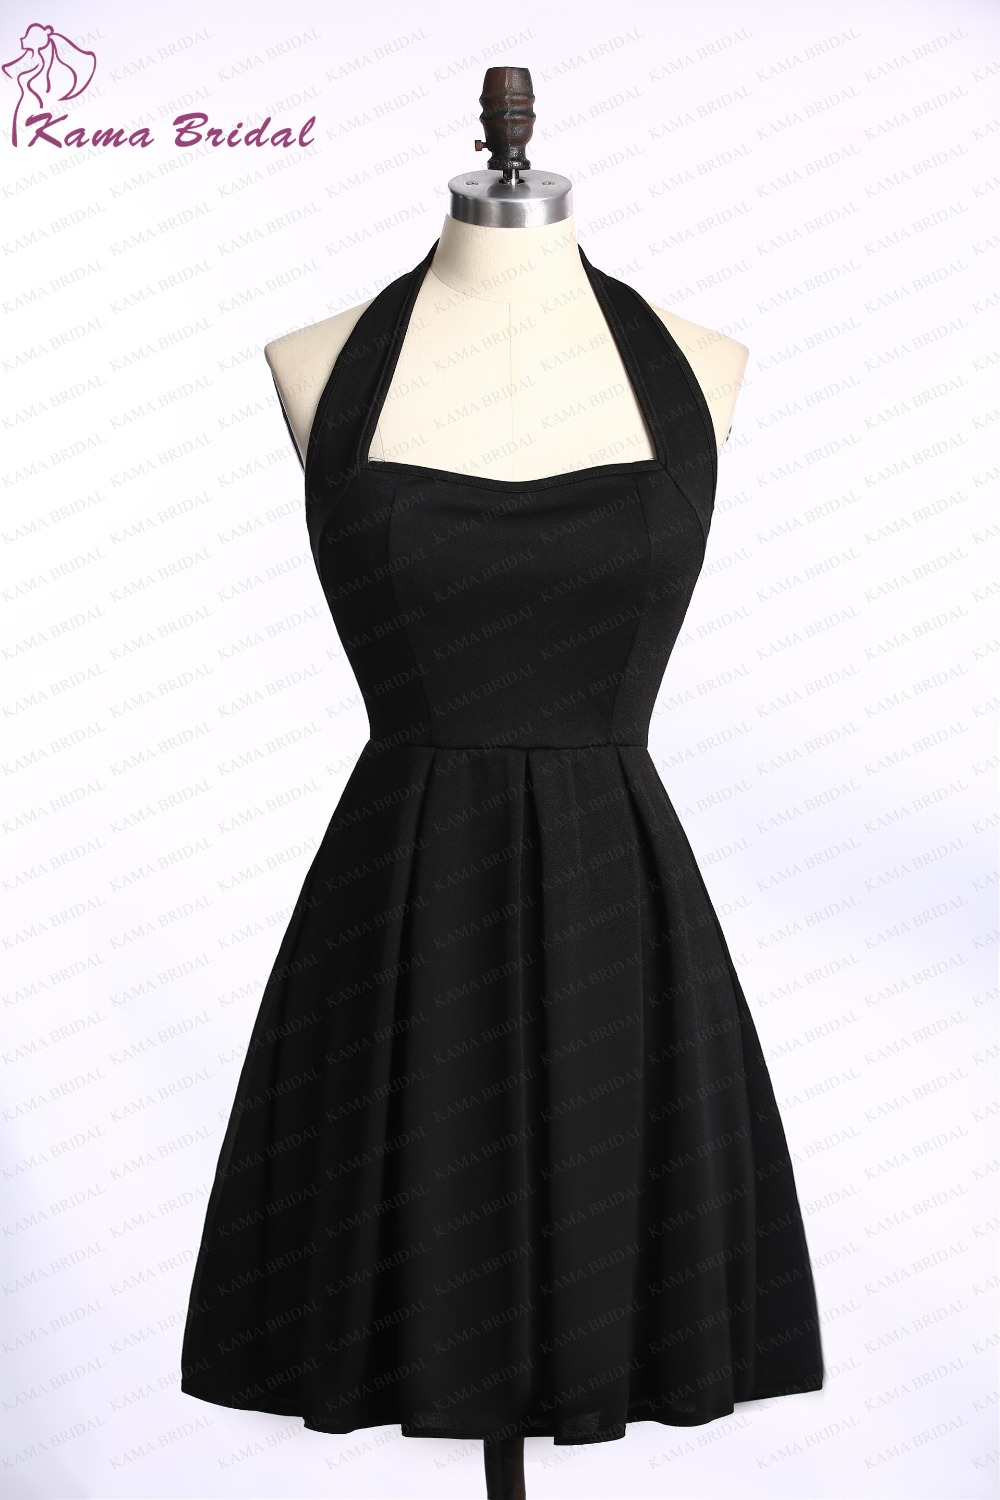 016c5aa219 Sexy Black Short Cocktail Dresses Halter A line Mini Party Gown Petite  Girls Night Party Gown Cheap Cocktail Dresses under 50-in Cocktail Dresses  from ...